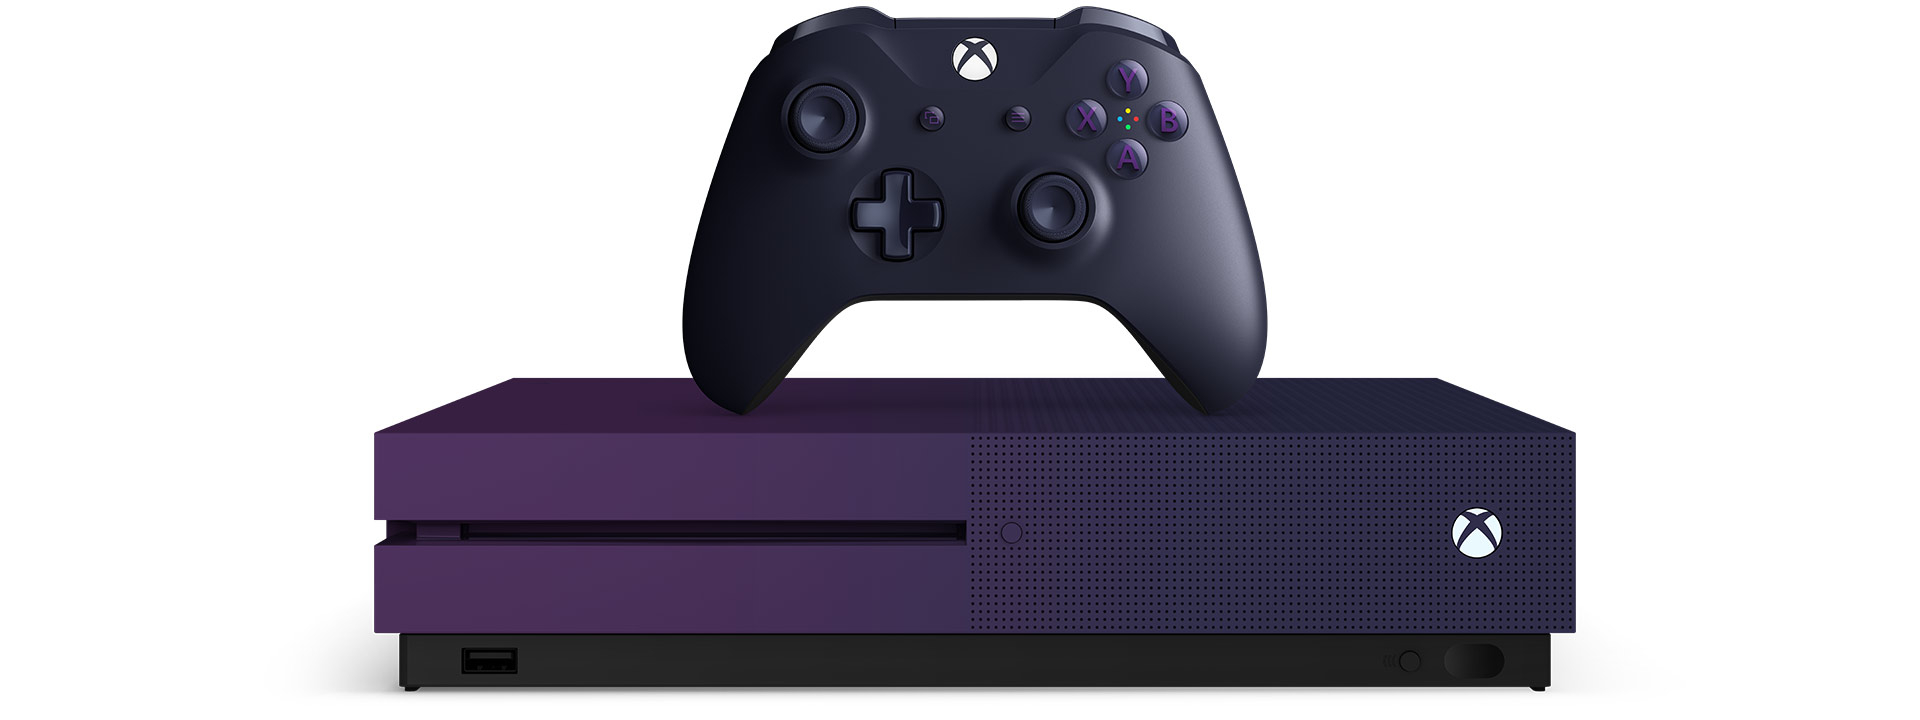 Xbox One S is Getting a Fortnite Bundle with a Sleek Purple Console